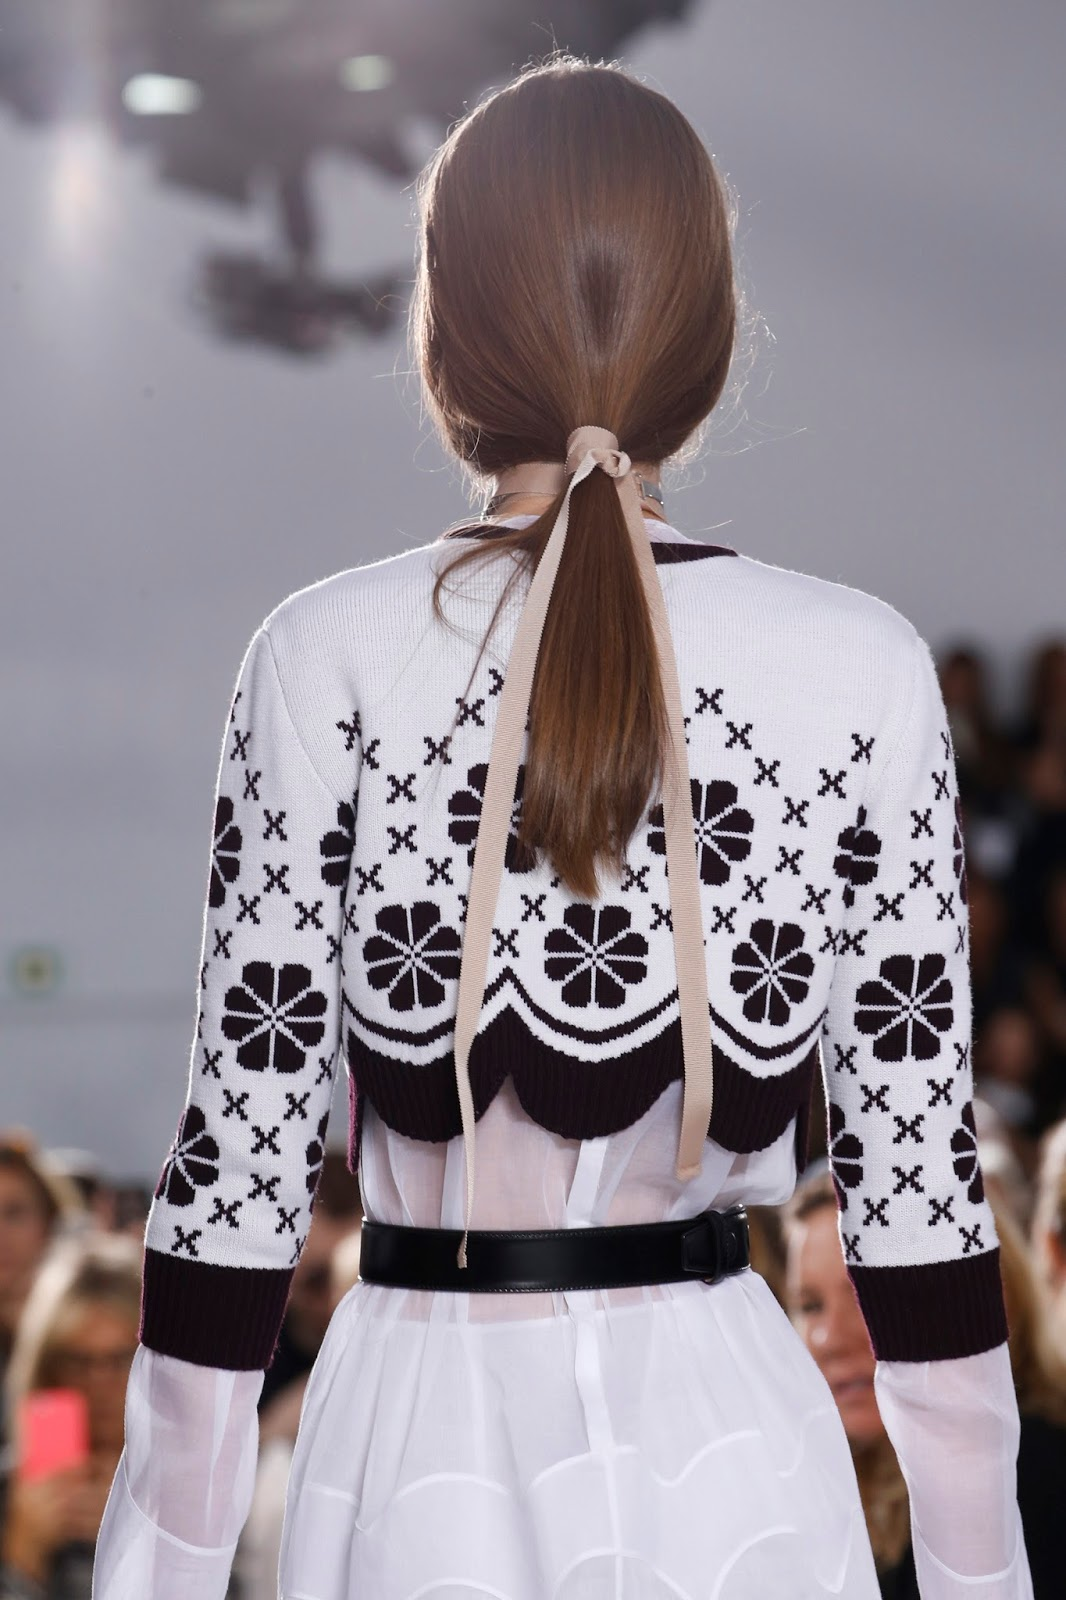 Spring/Summer 2016 trend report / Christian Dior SS16 / ribbons & bows via www.fashionedbylove.co.uk